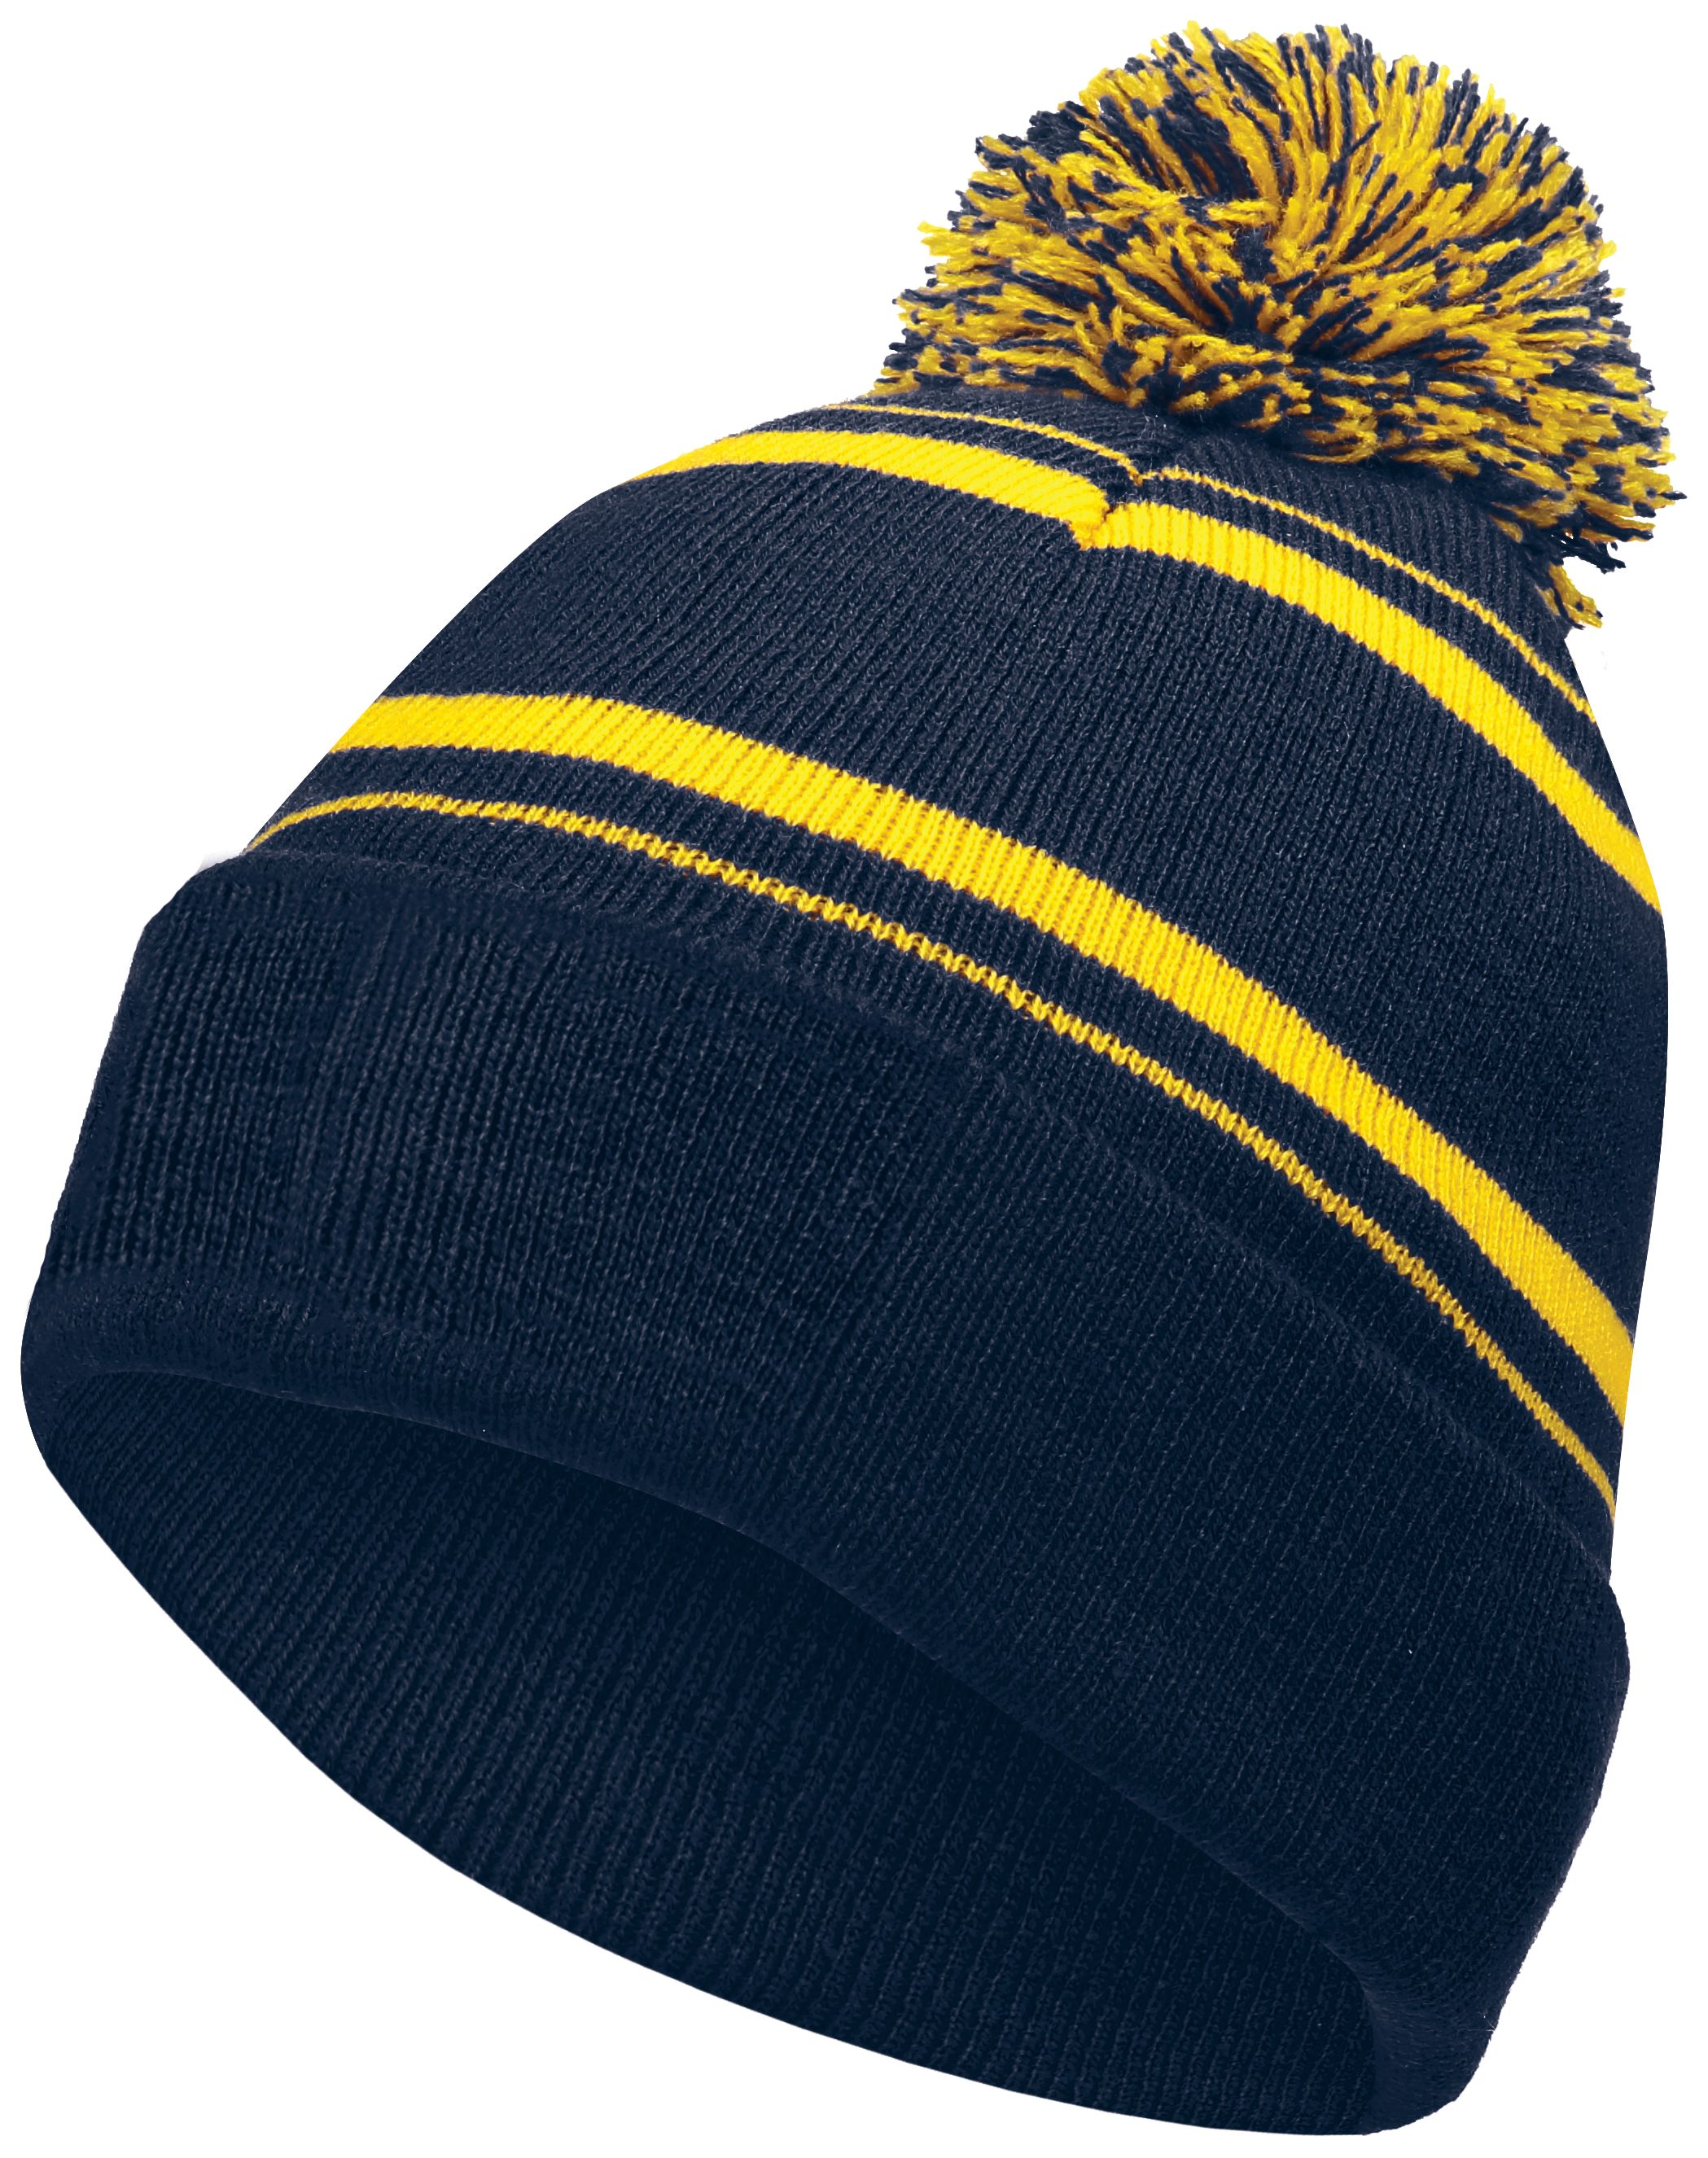 Homecoming Beanie - NAVY/LIGHT GOLD